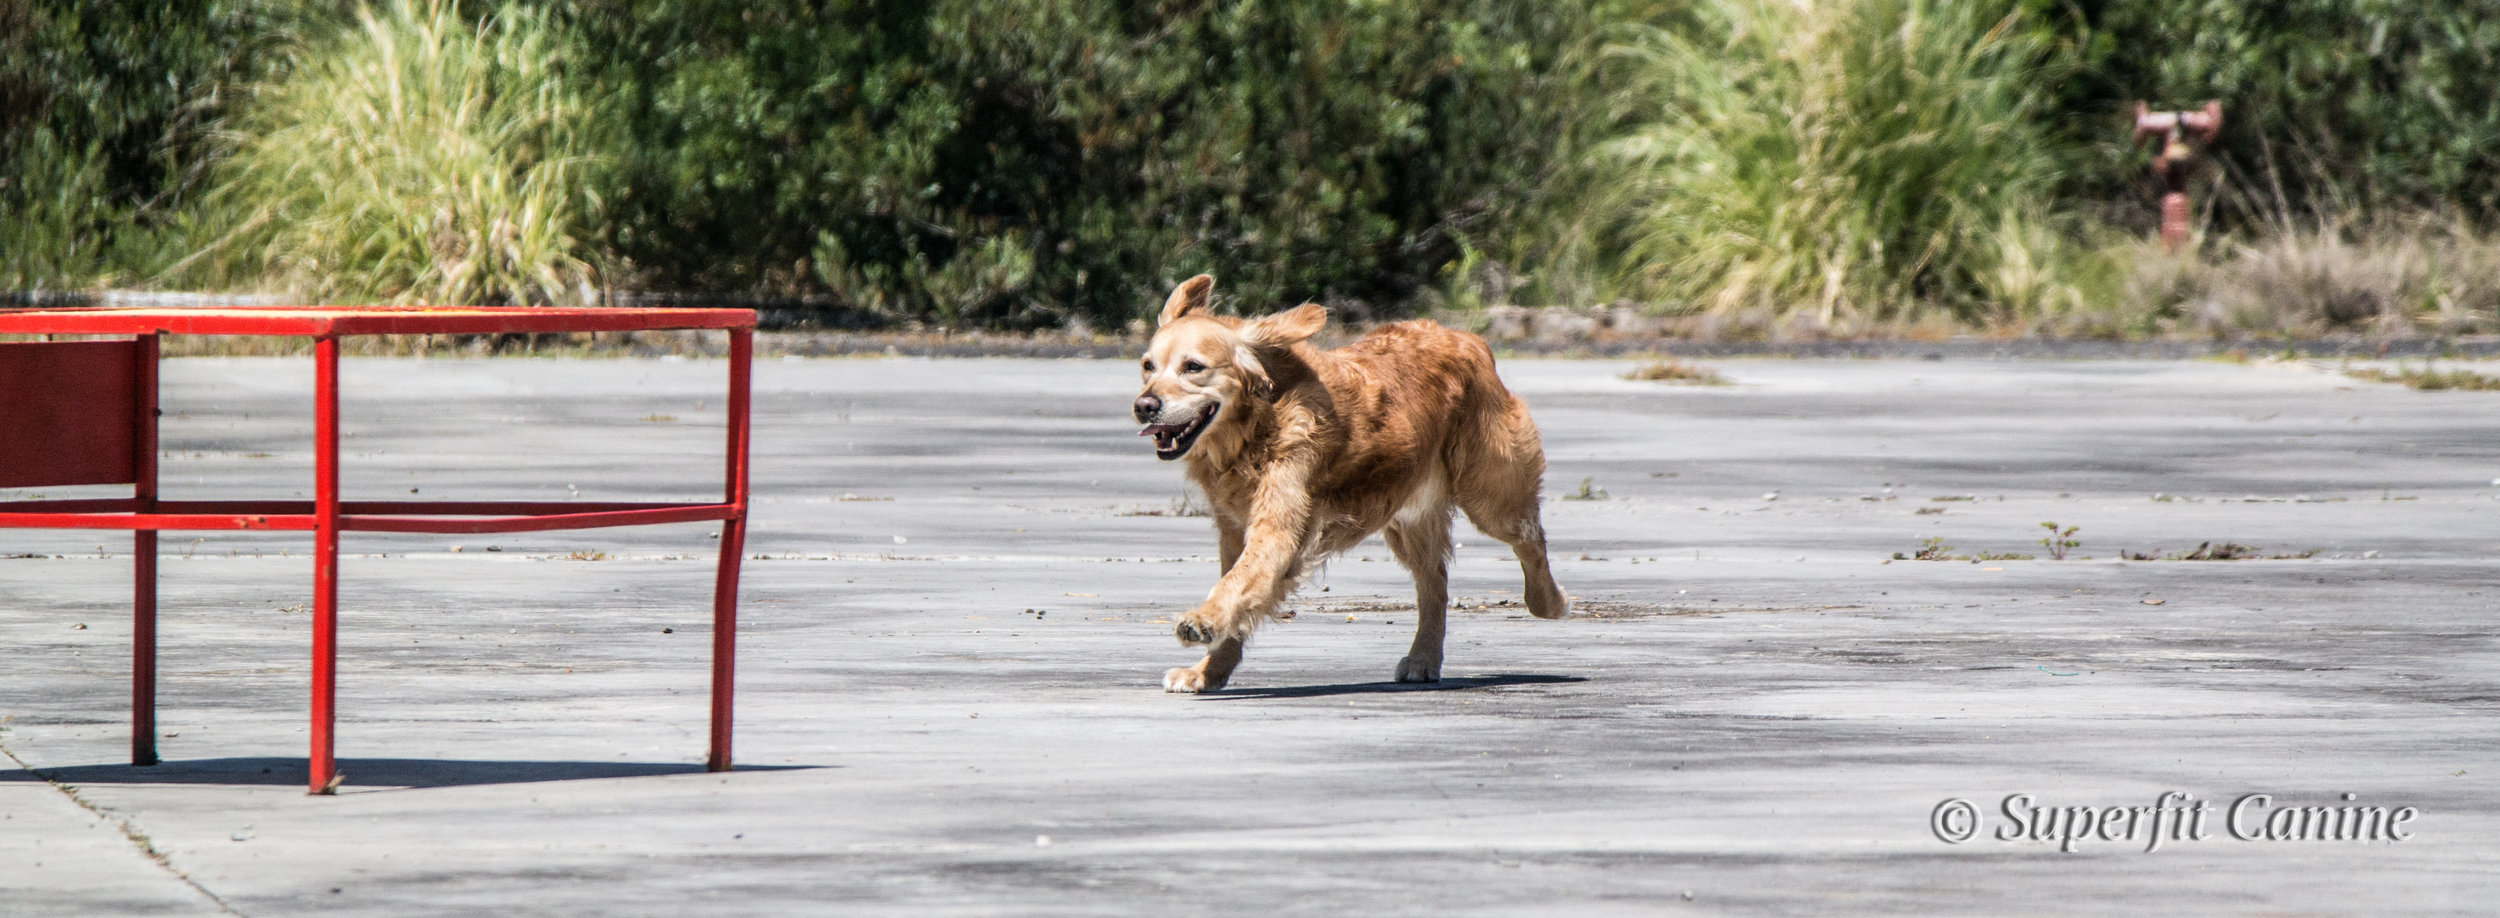 K9 Will (SARDA) during the Direction and Control portion of the workshop